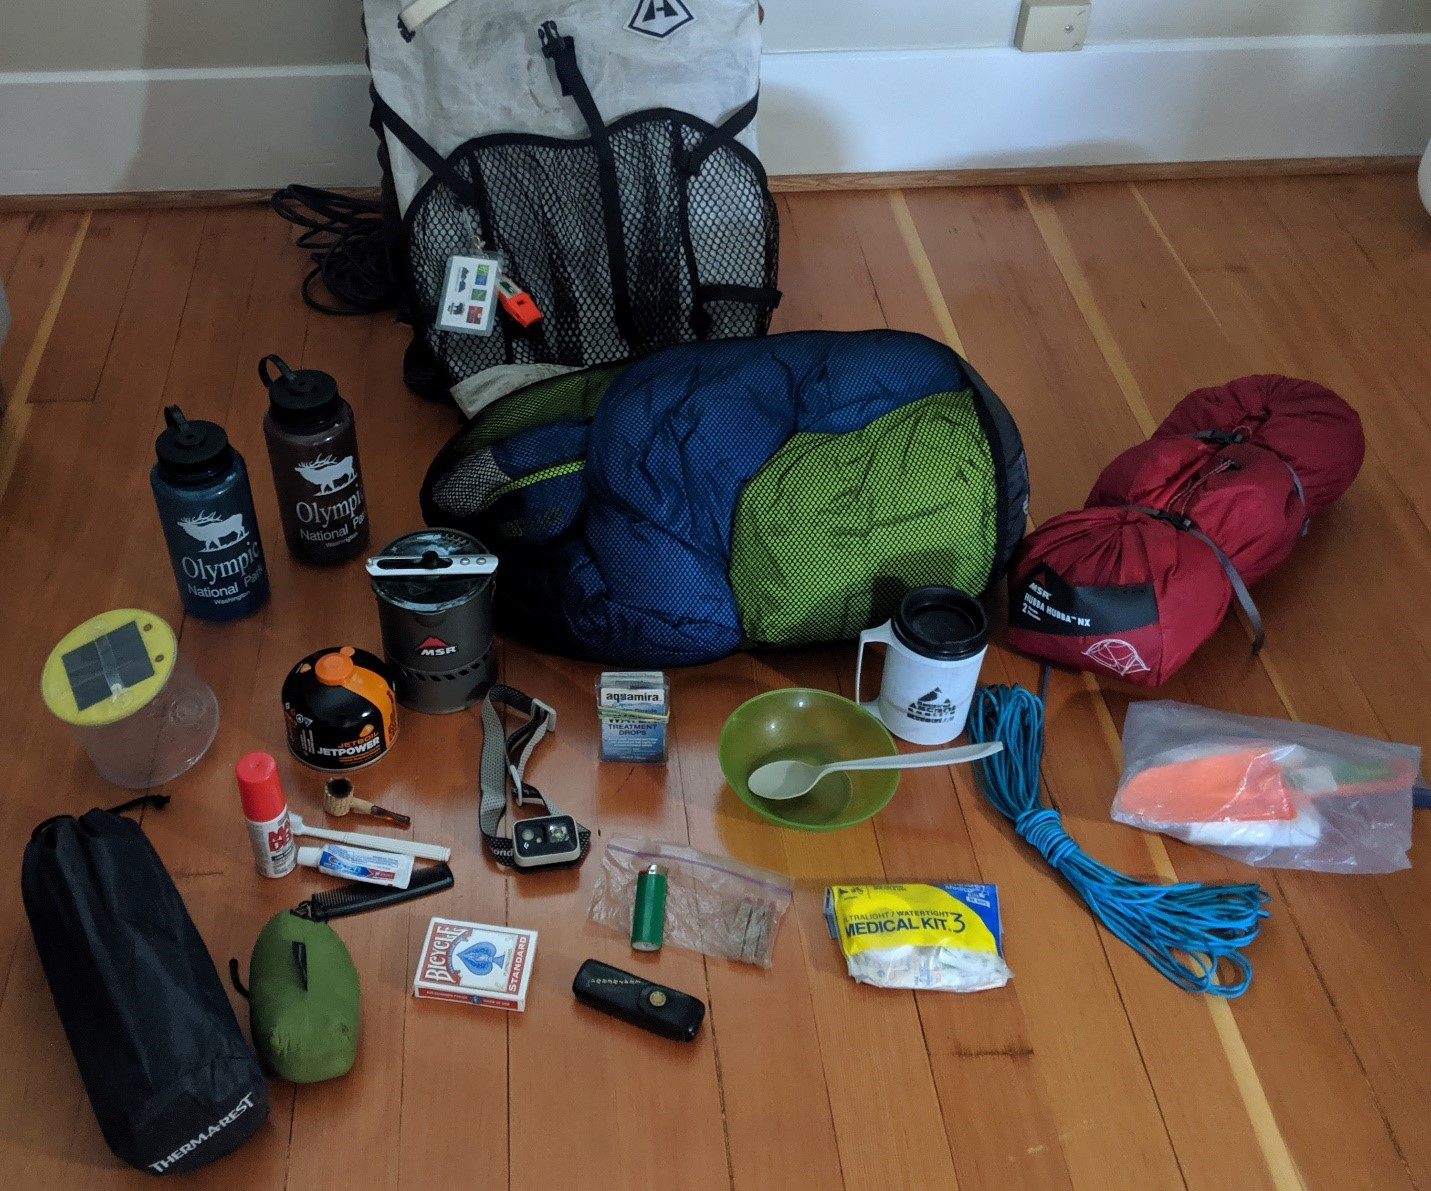 Materials to pack for a hike laid out on the floor.